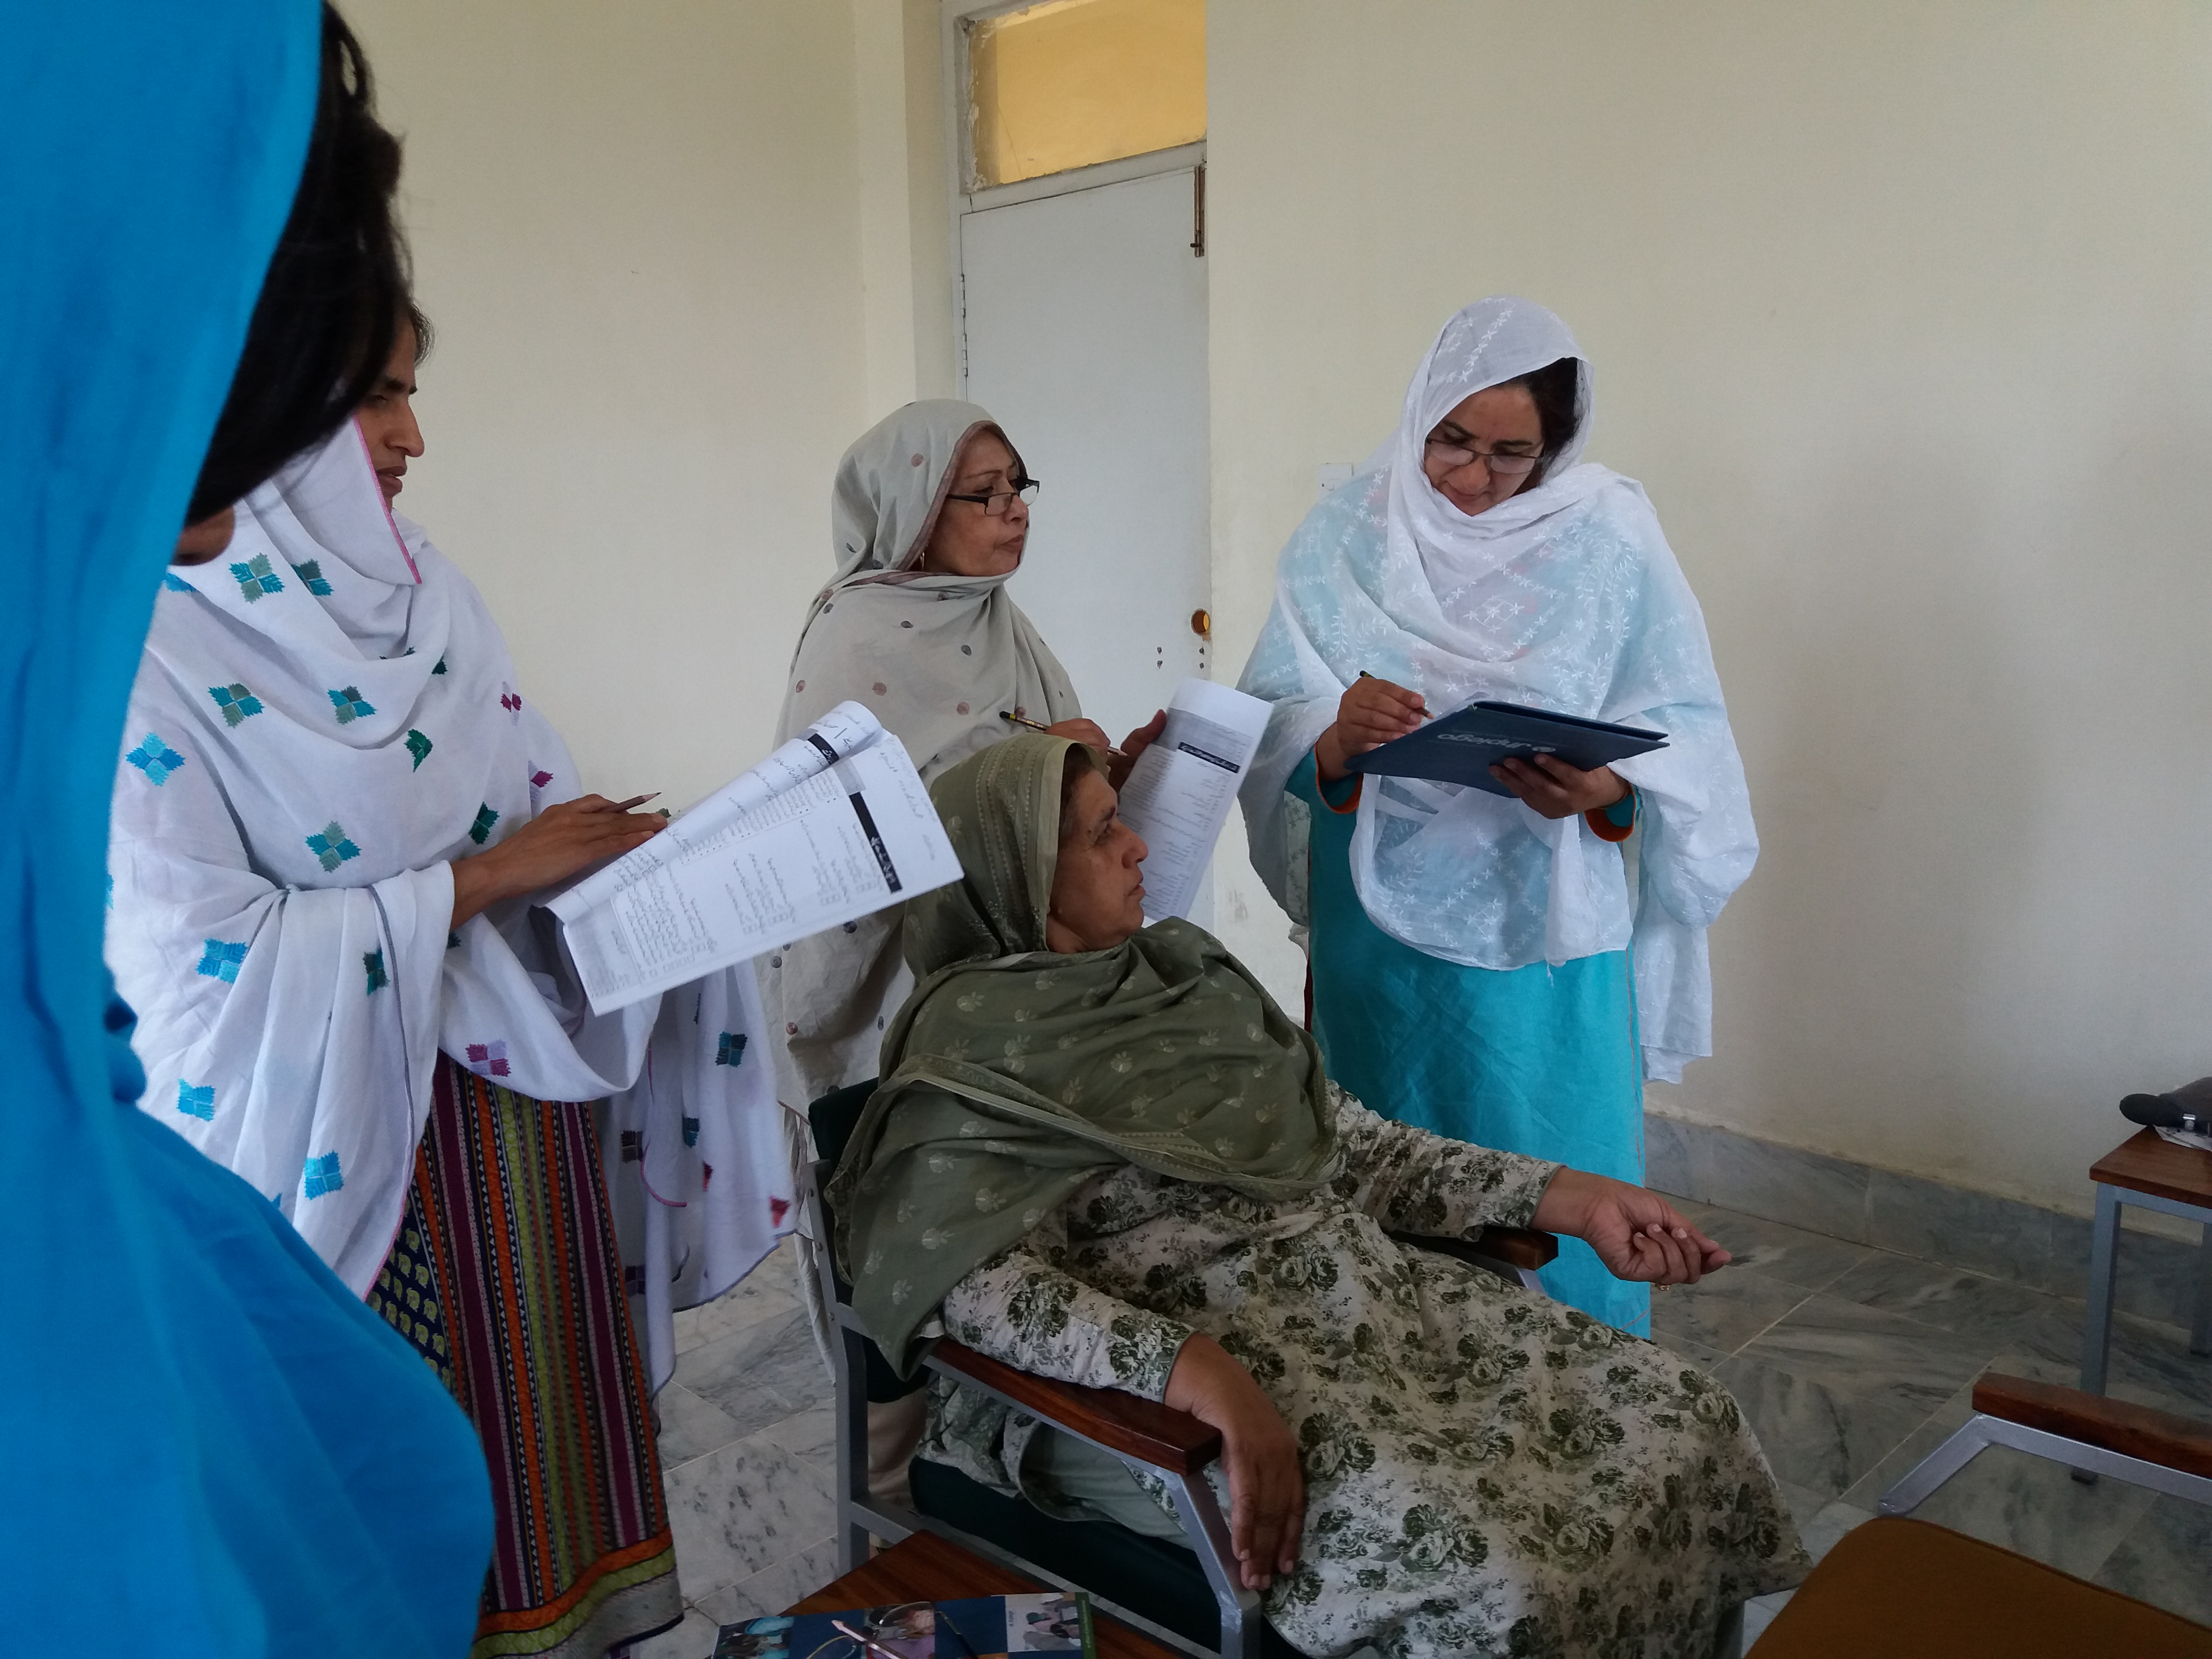 Lady Health Visitors and Community Midwives engaged in interactive role plays to facilitate learning during the Safe Childbirth Checklist training in the province of Khyber Pakhtunkhwa, Pakistan